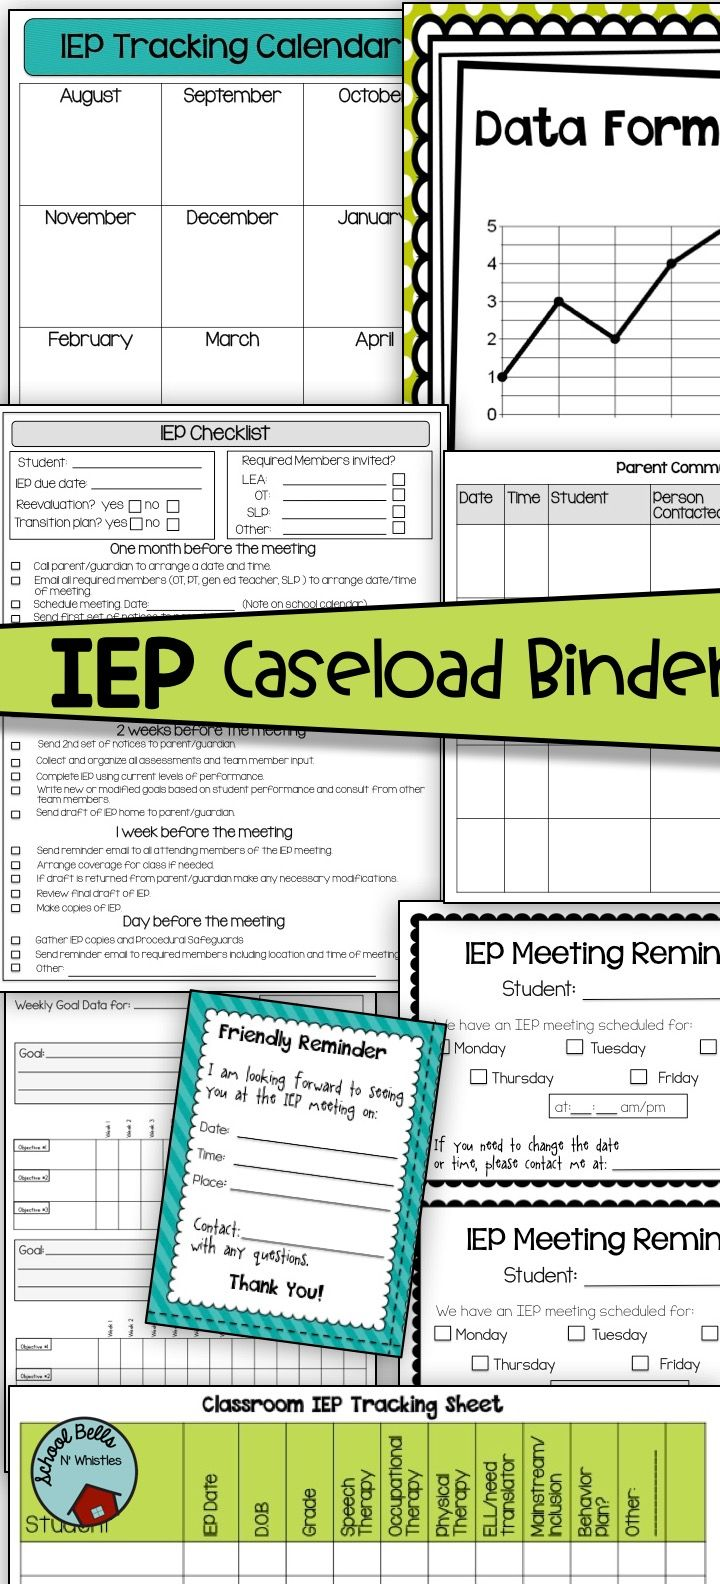 Organize and manage your IEP case load with this IEP binder. Includes check lists, data forms, assessments, token boards, parent communication logs, IEP reminder notes, and more! $